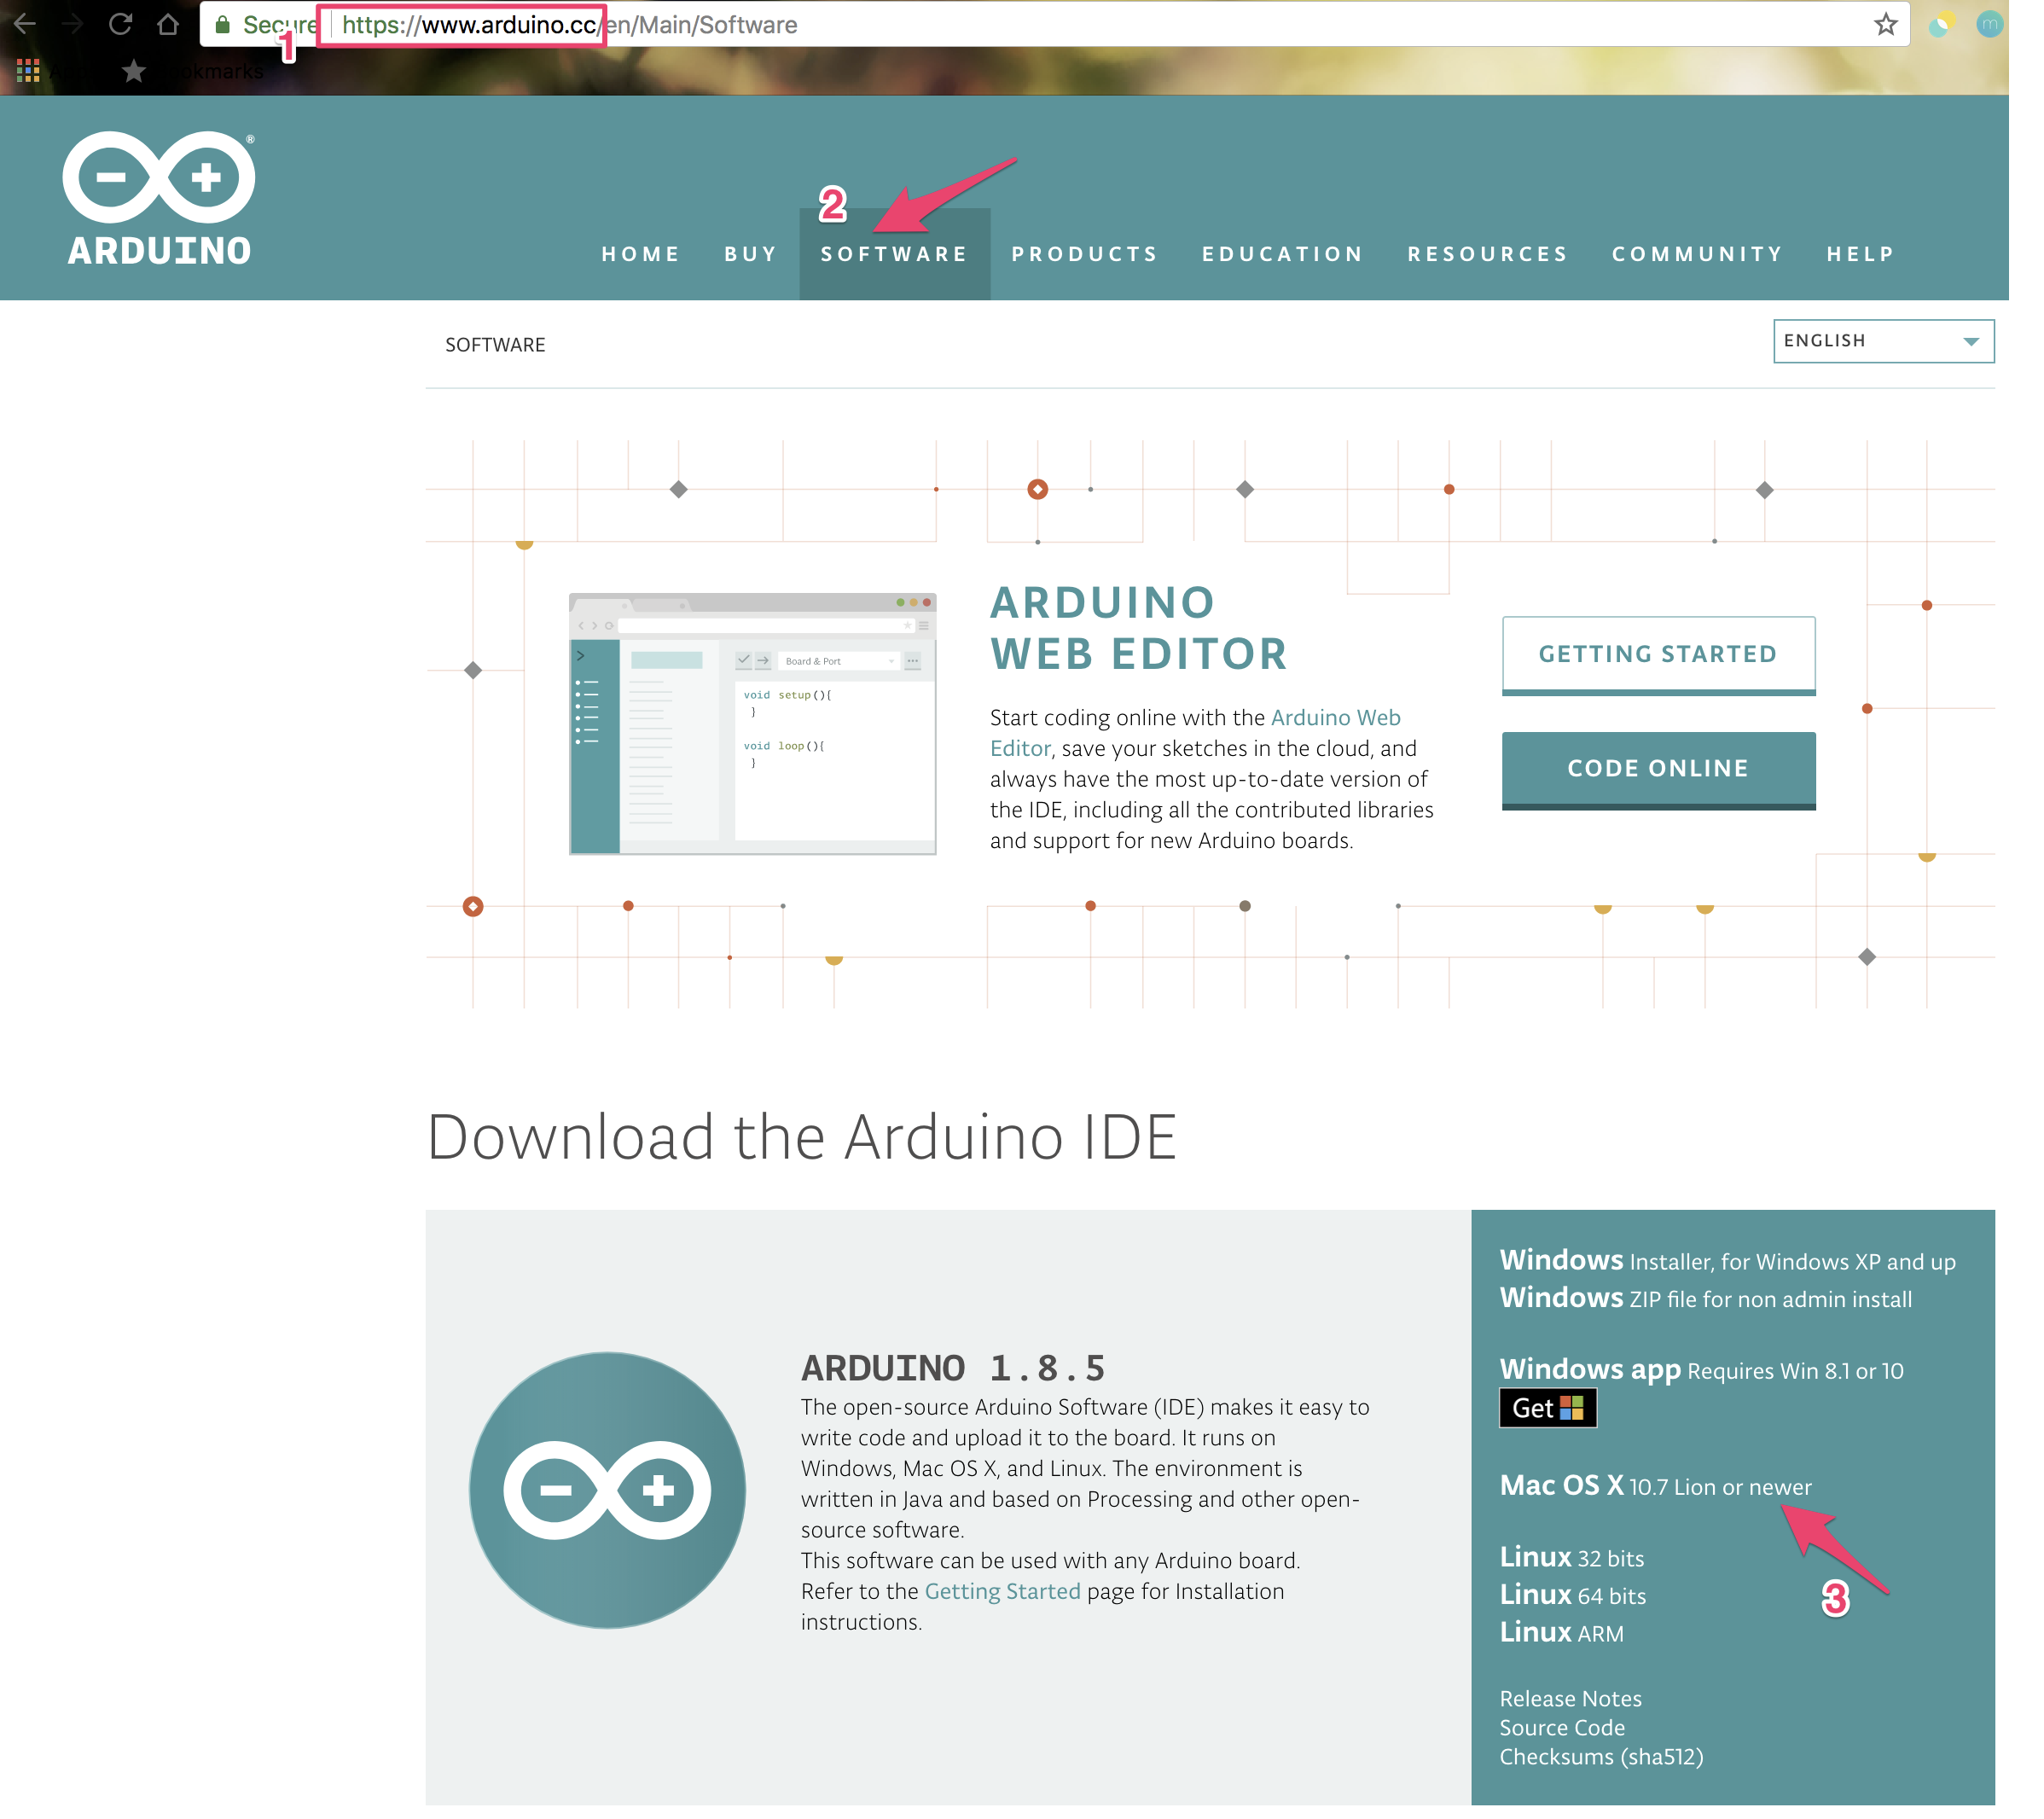 """A Chronicle of My """"Getting Started With Arduino"""" Journey"""